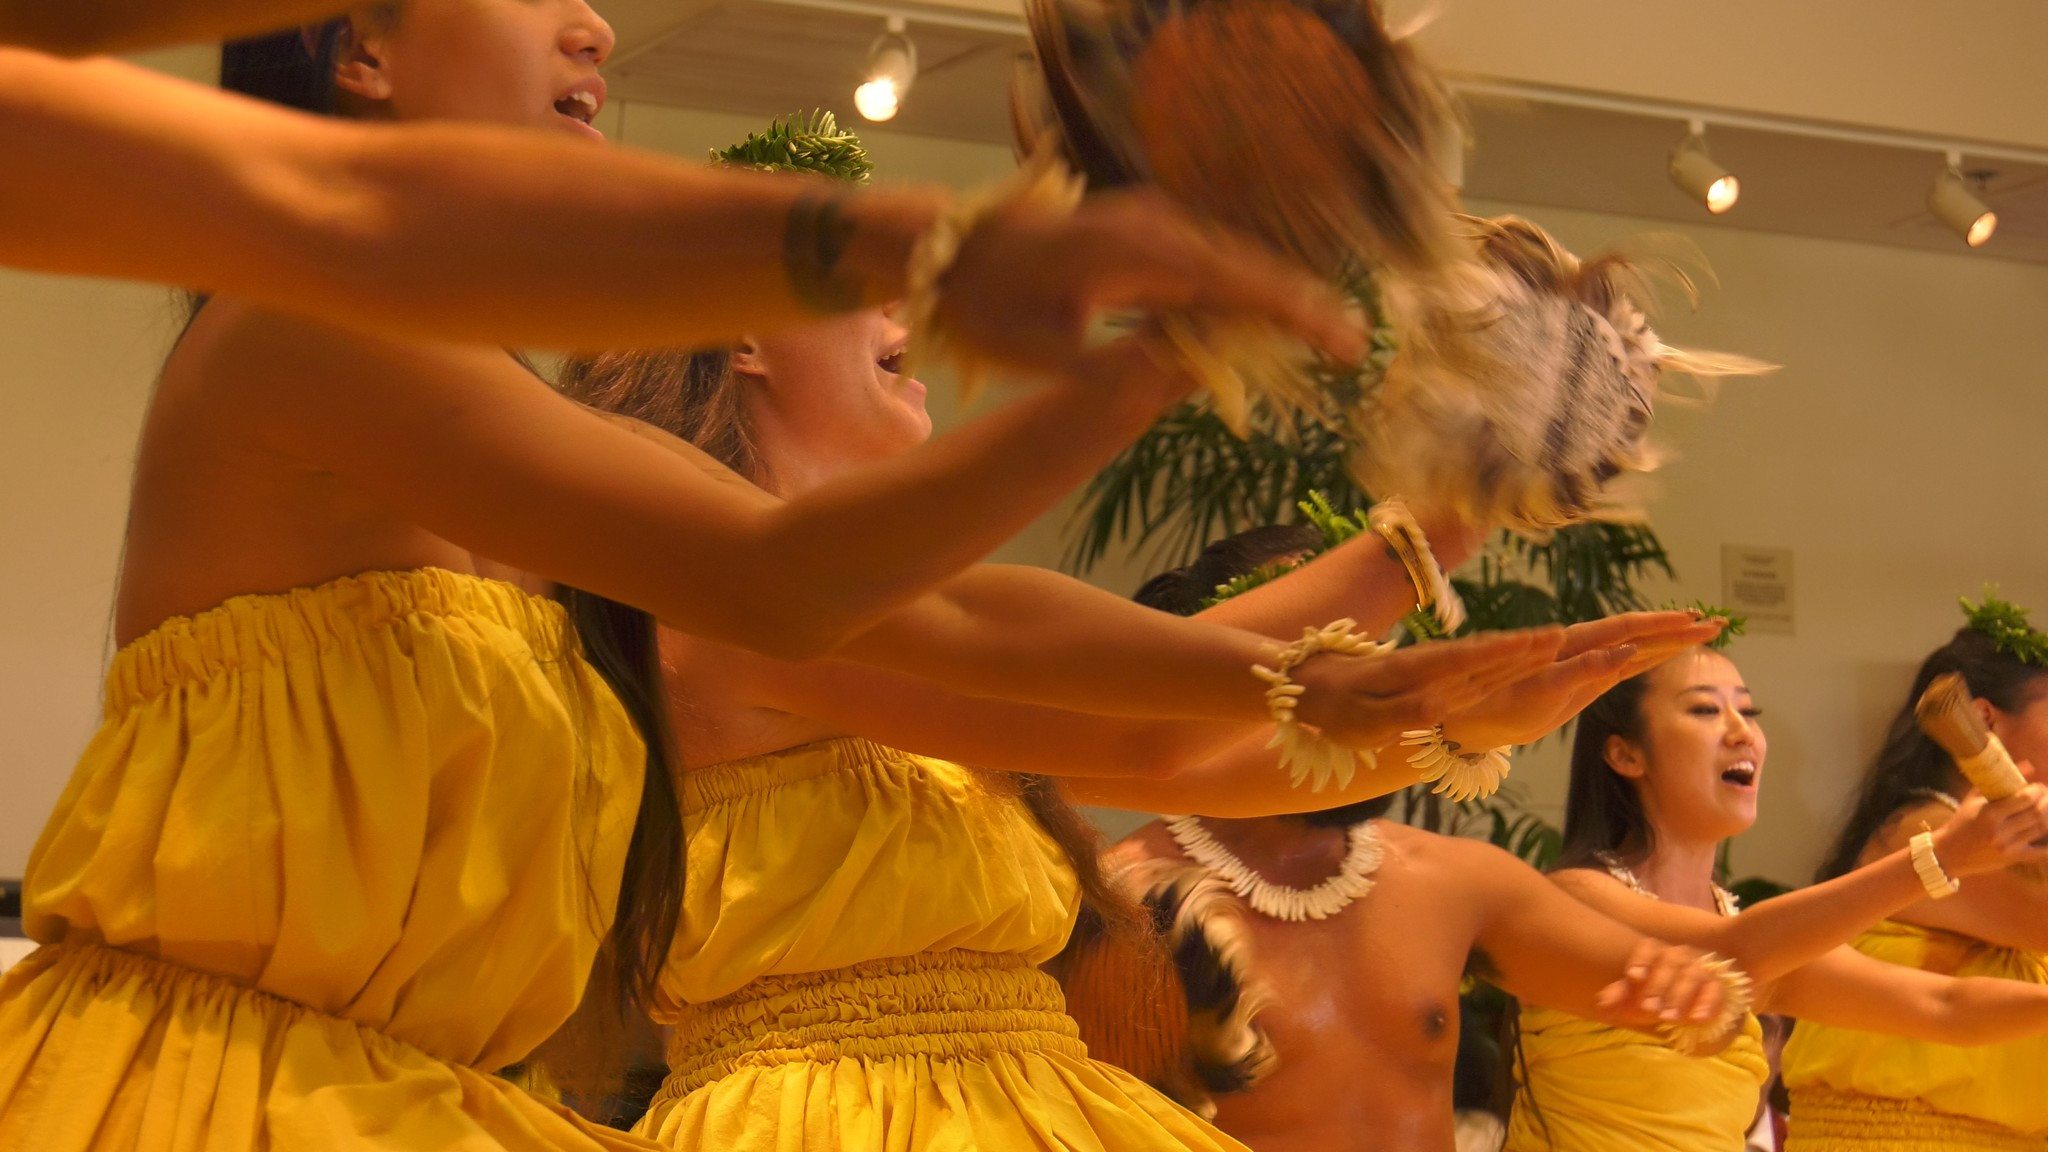 Dancers arms move during dance.